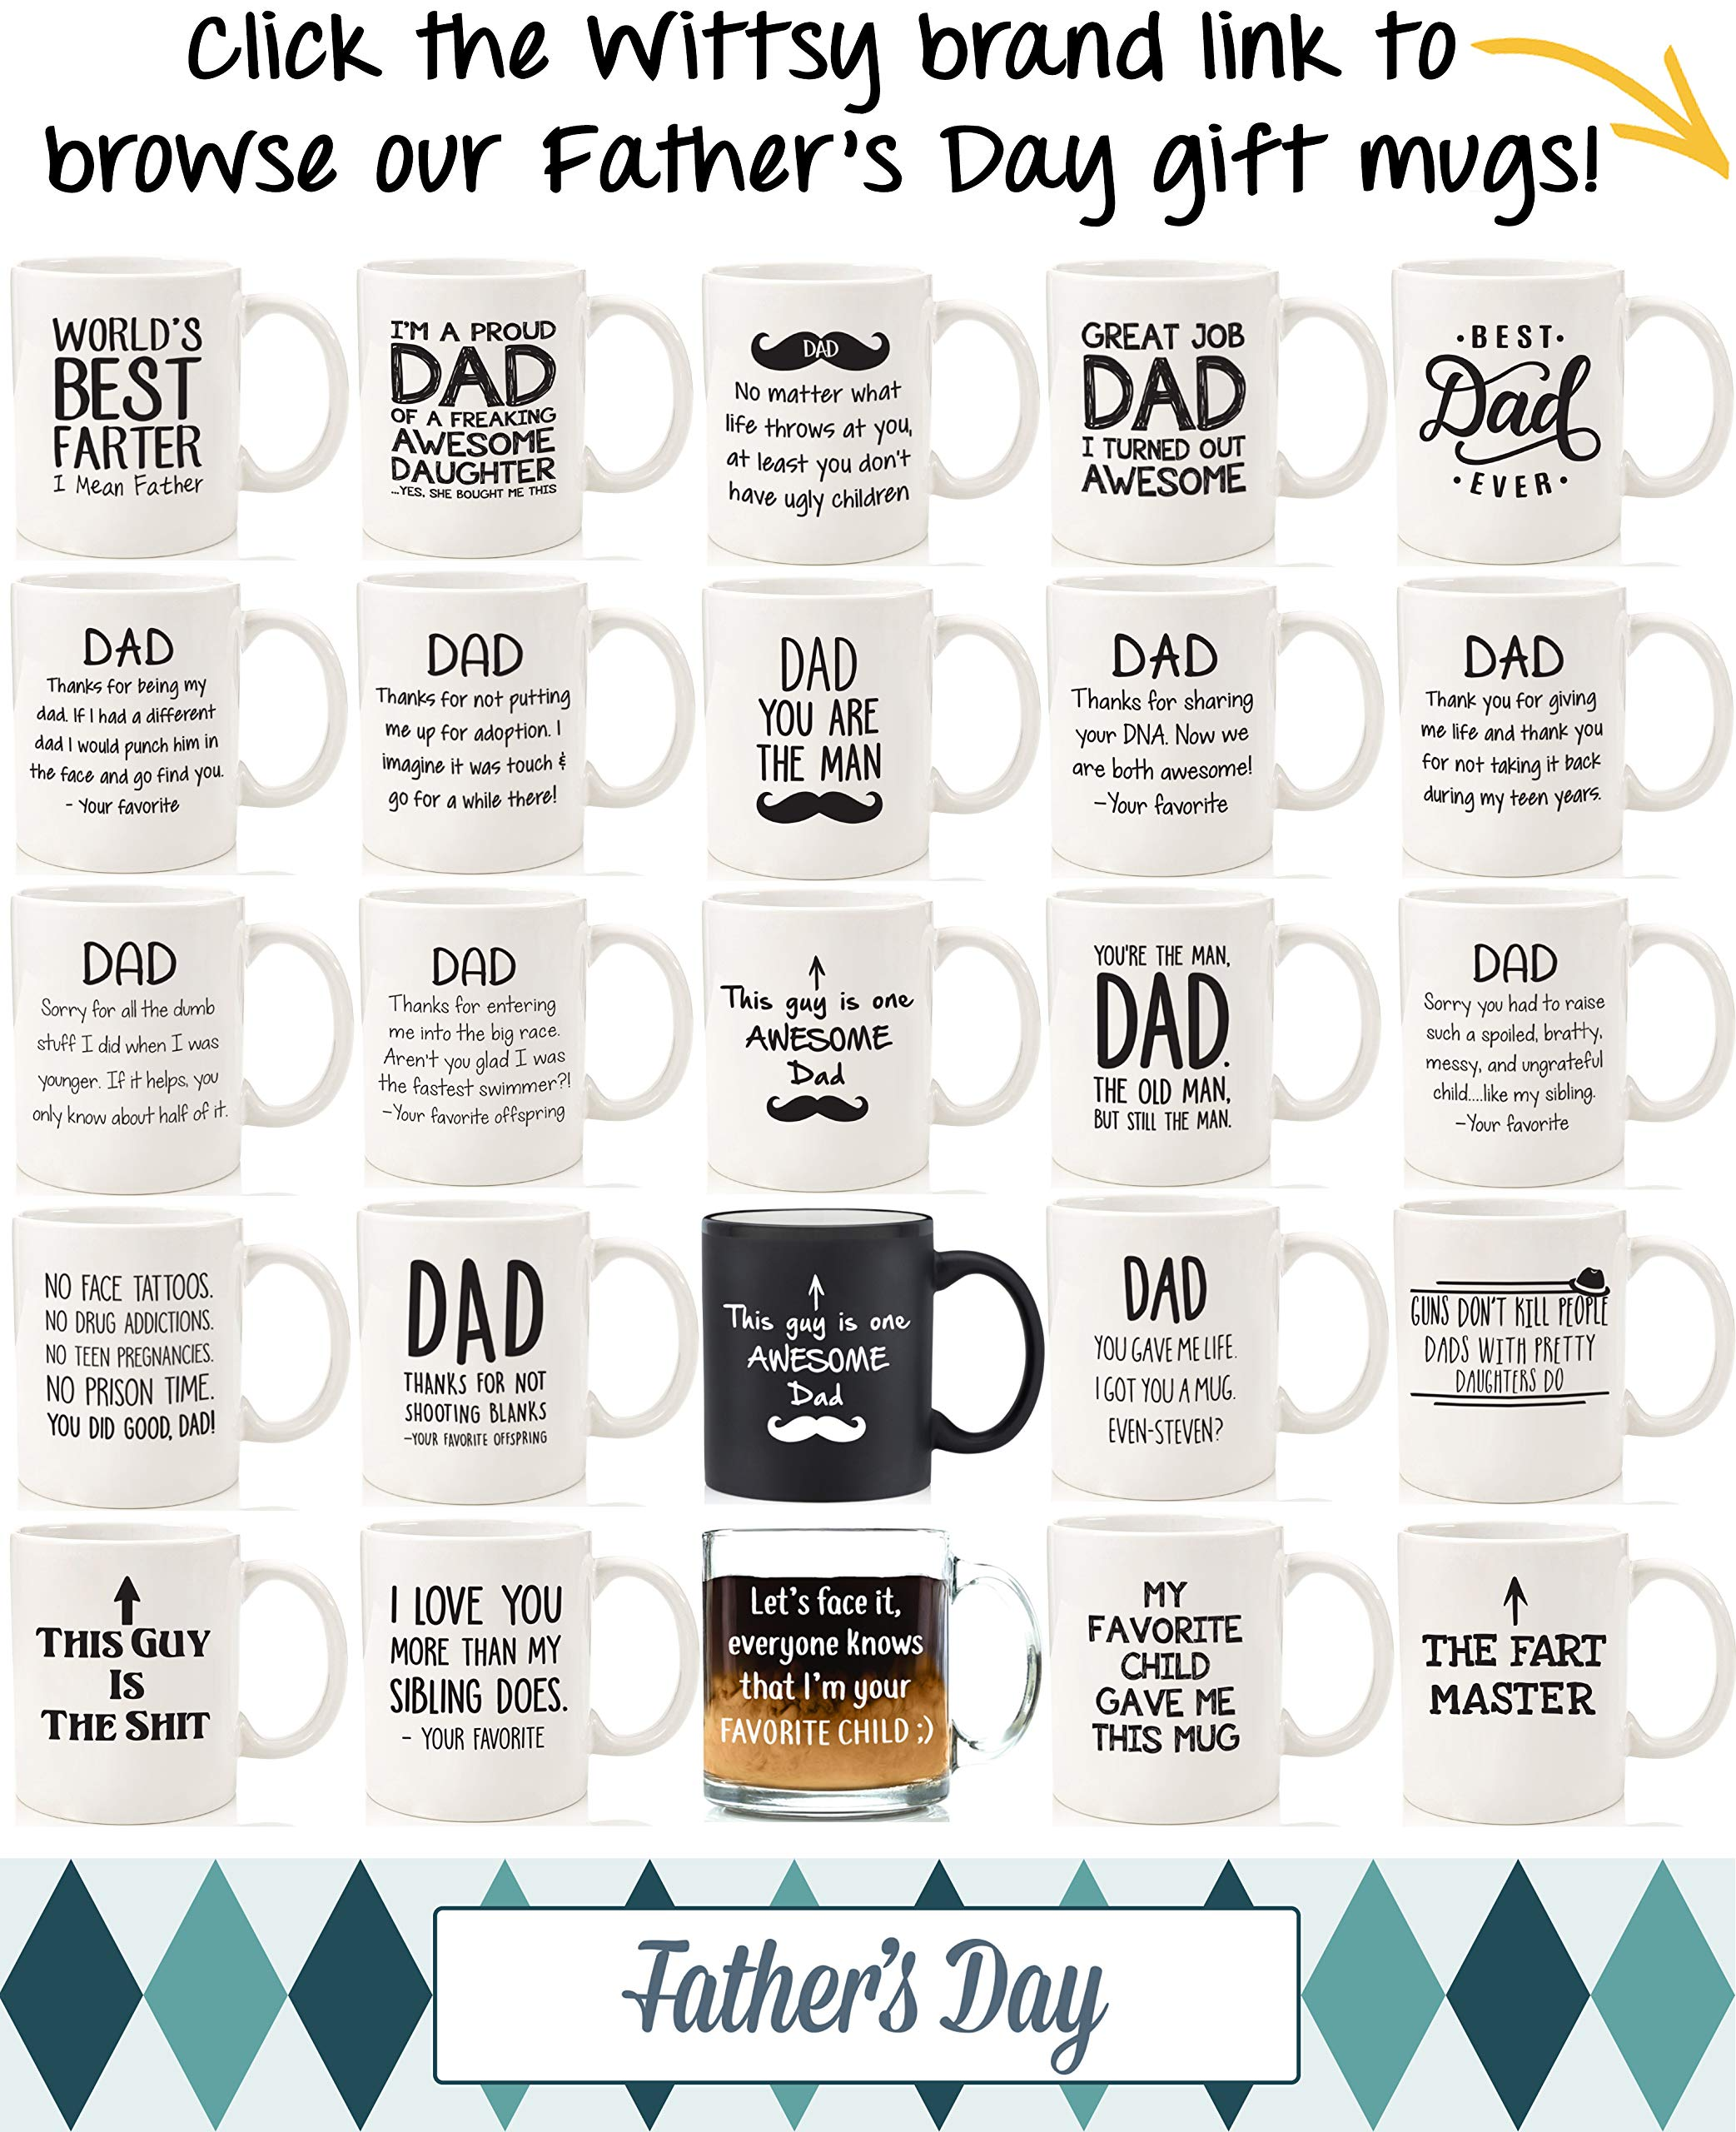 Proud Dad Of A Freaking Awesome Daughter Funny Mug - Best Fathers Day Gag Gifts For Dad From Daughter - Unique Gift Idea For Men, Him - Cool Birthday Present For a Father - Fun Novelty Coffee Cup by Wittsy Glassware and Gifts (Image #5)